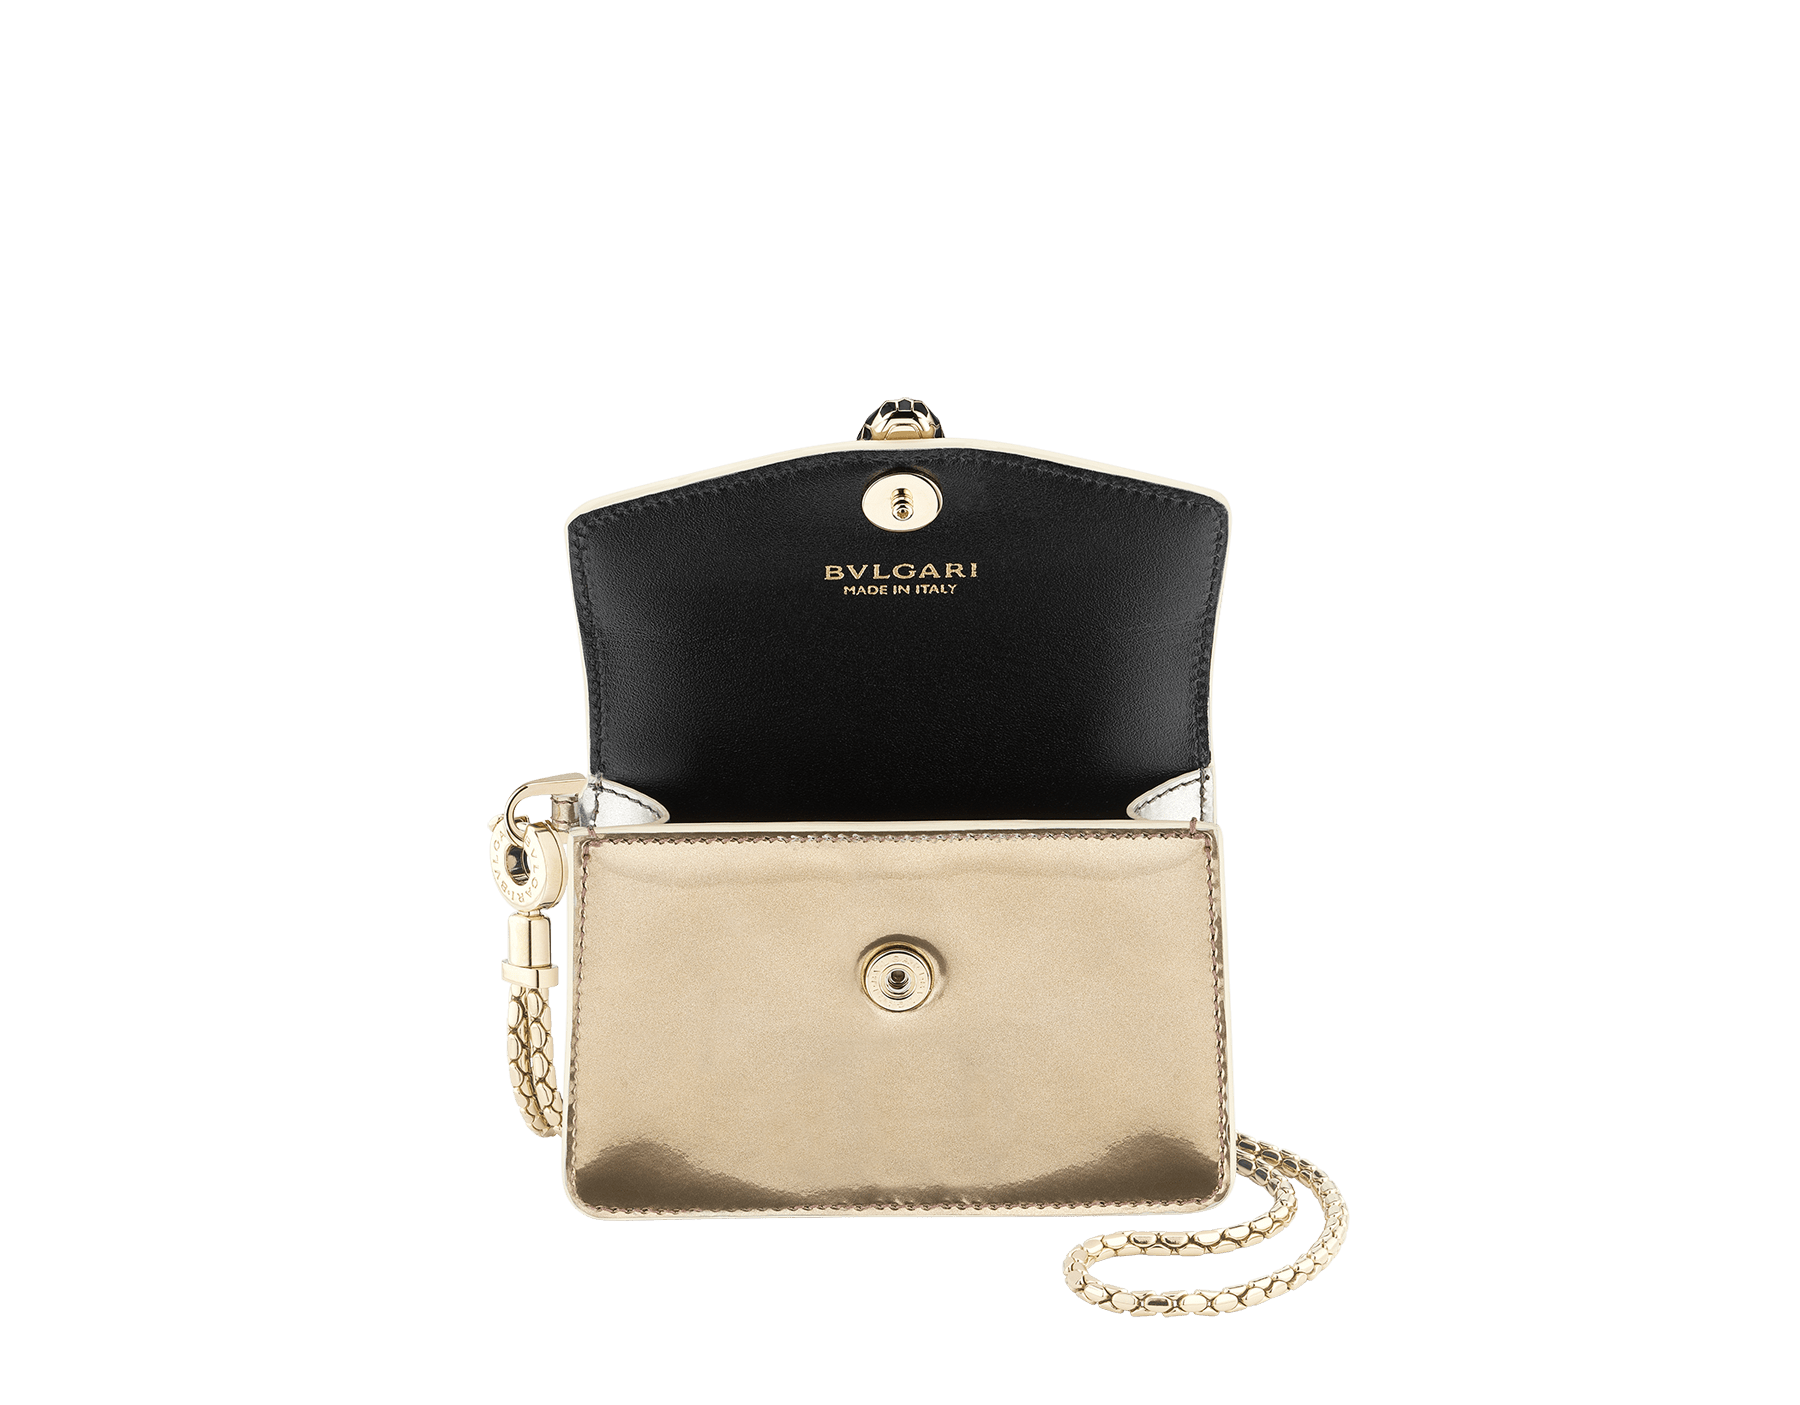 Serpenti Forever Holiday Season neck credit card holder in antique bronze and silver brushed metallic calf leather. Snakehead closure in light gold plated brass embellished with black and glitter antique bronze enamel, and black onyx eyes. 289490 image 2